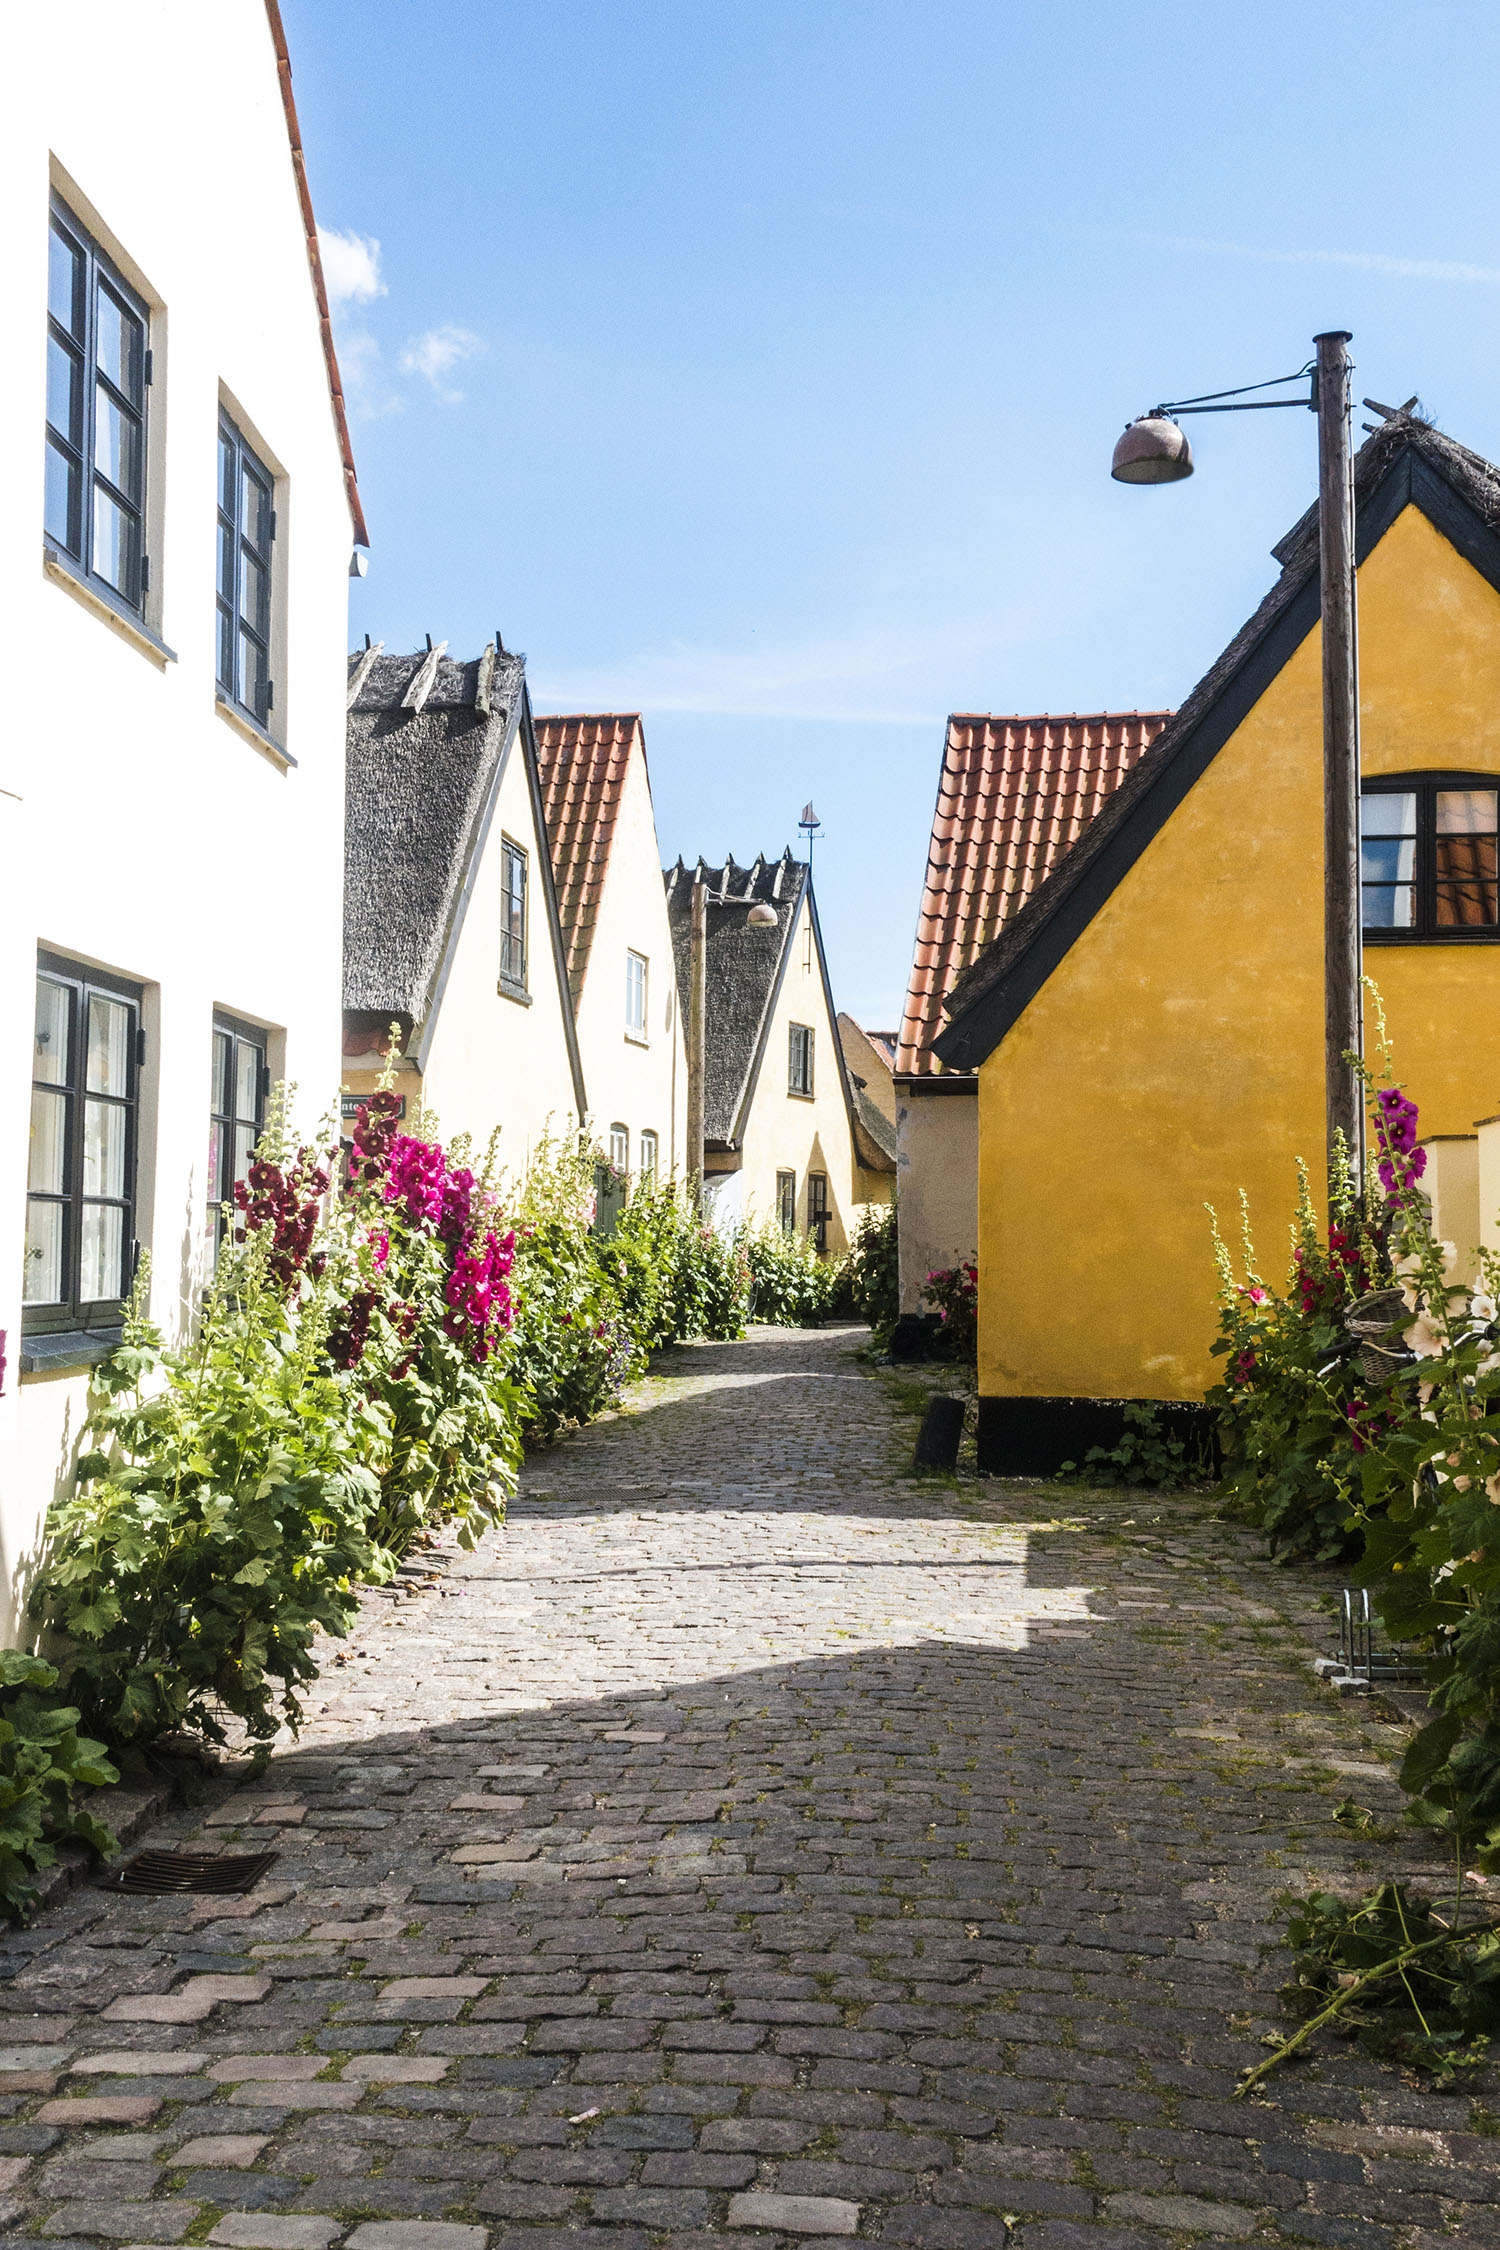 Dragør_130717_HelenaLundquist_12.small